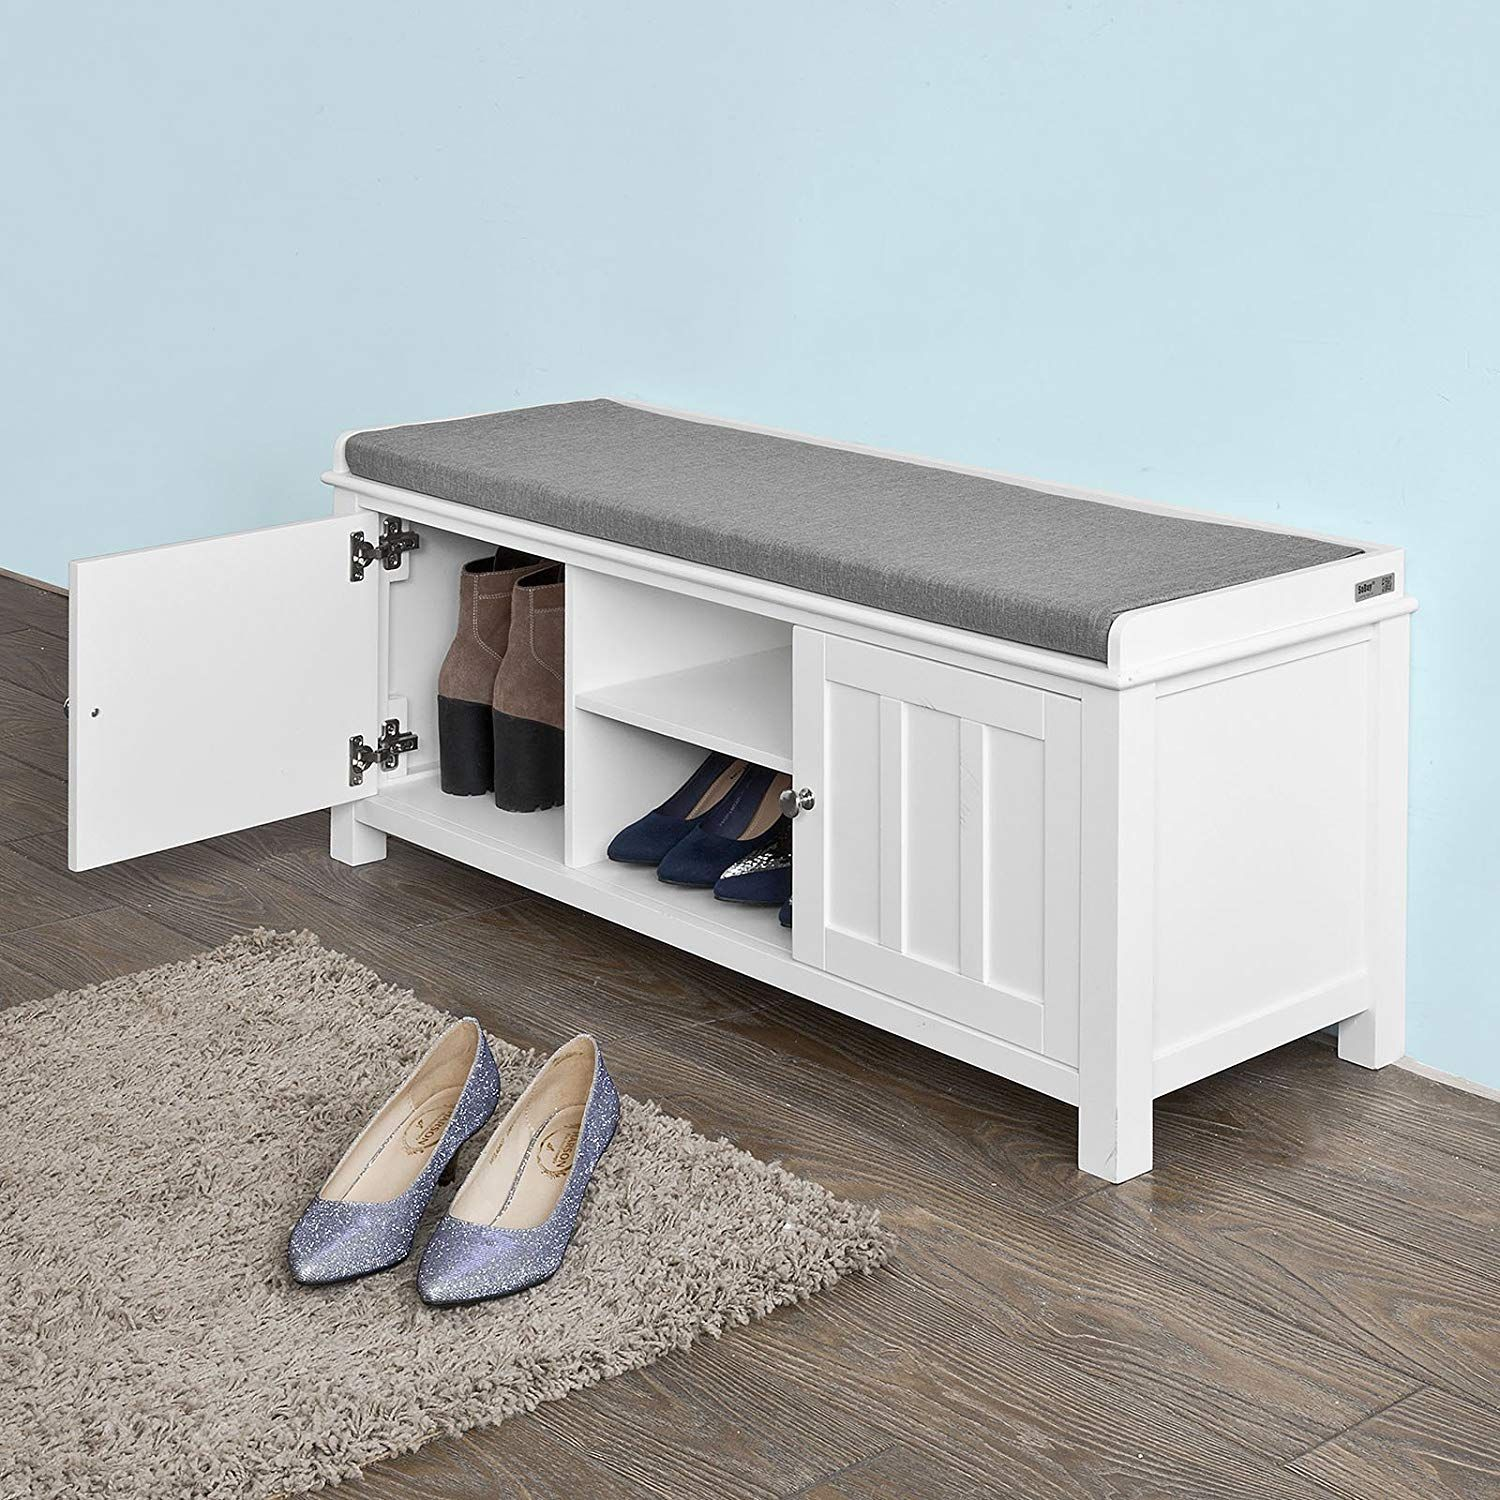 Amazon Com Haotian White Storage Bench With 2 Doors Removable Seat Cushion Shoe Cabinet Shoe Bench Fsr35 W W White Storage Bench Shoe Cabinet Storage Bench